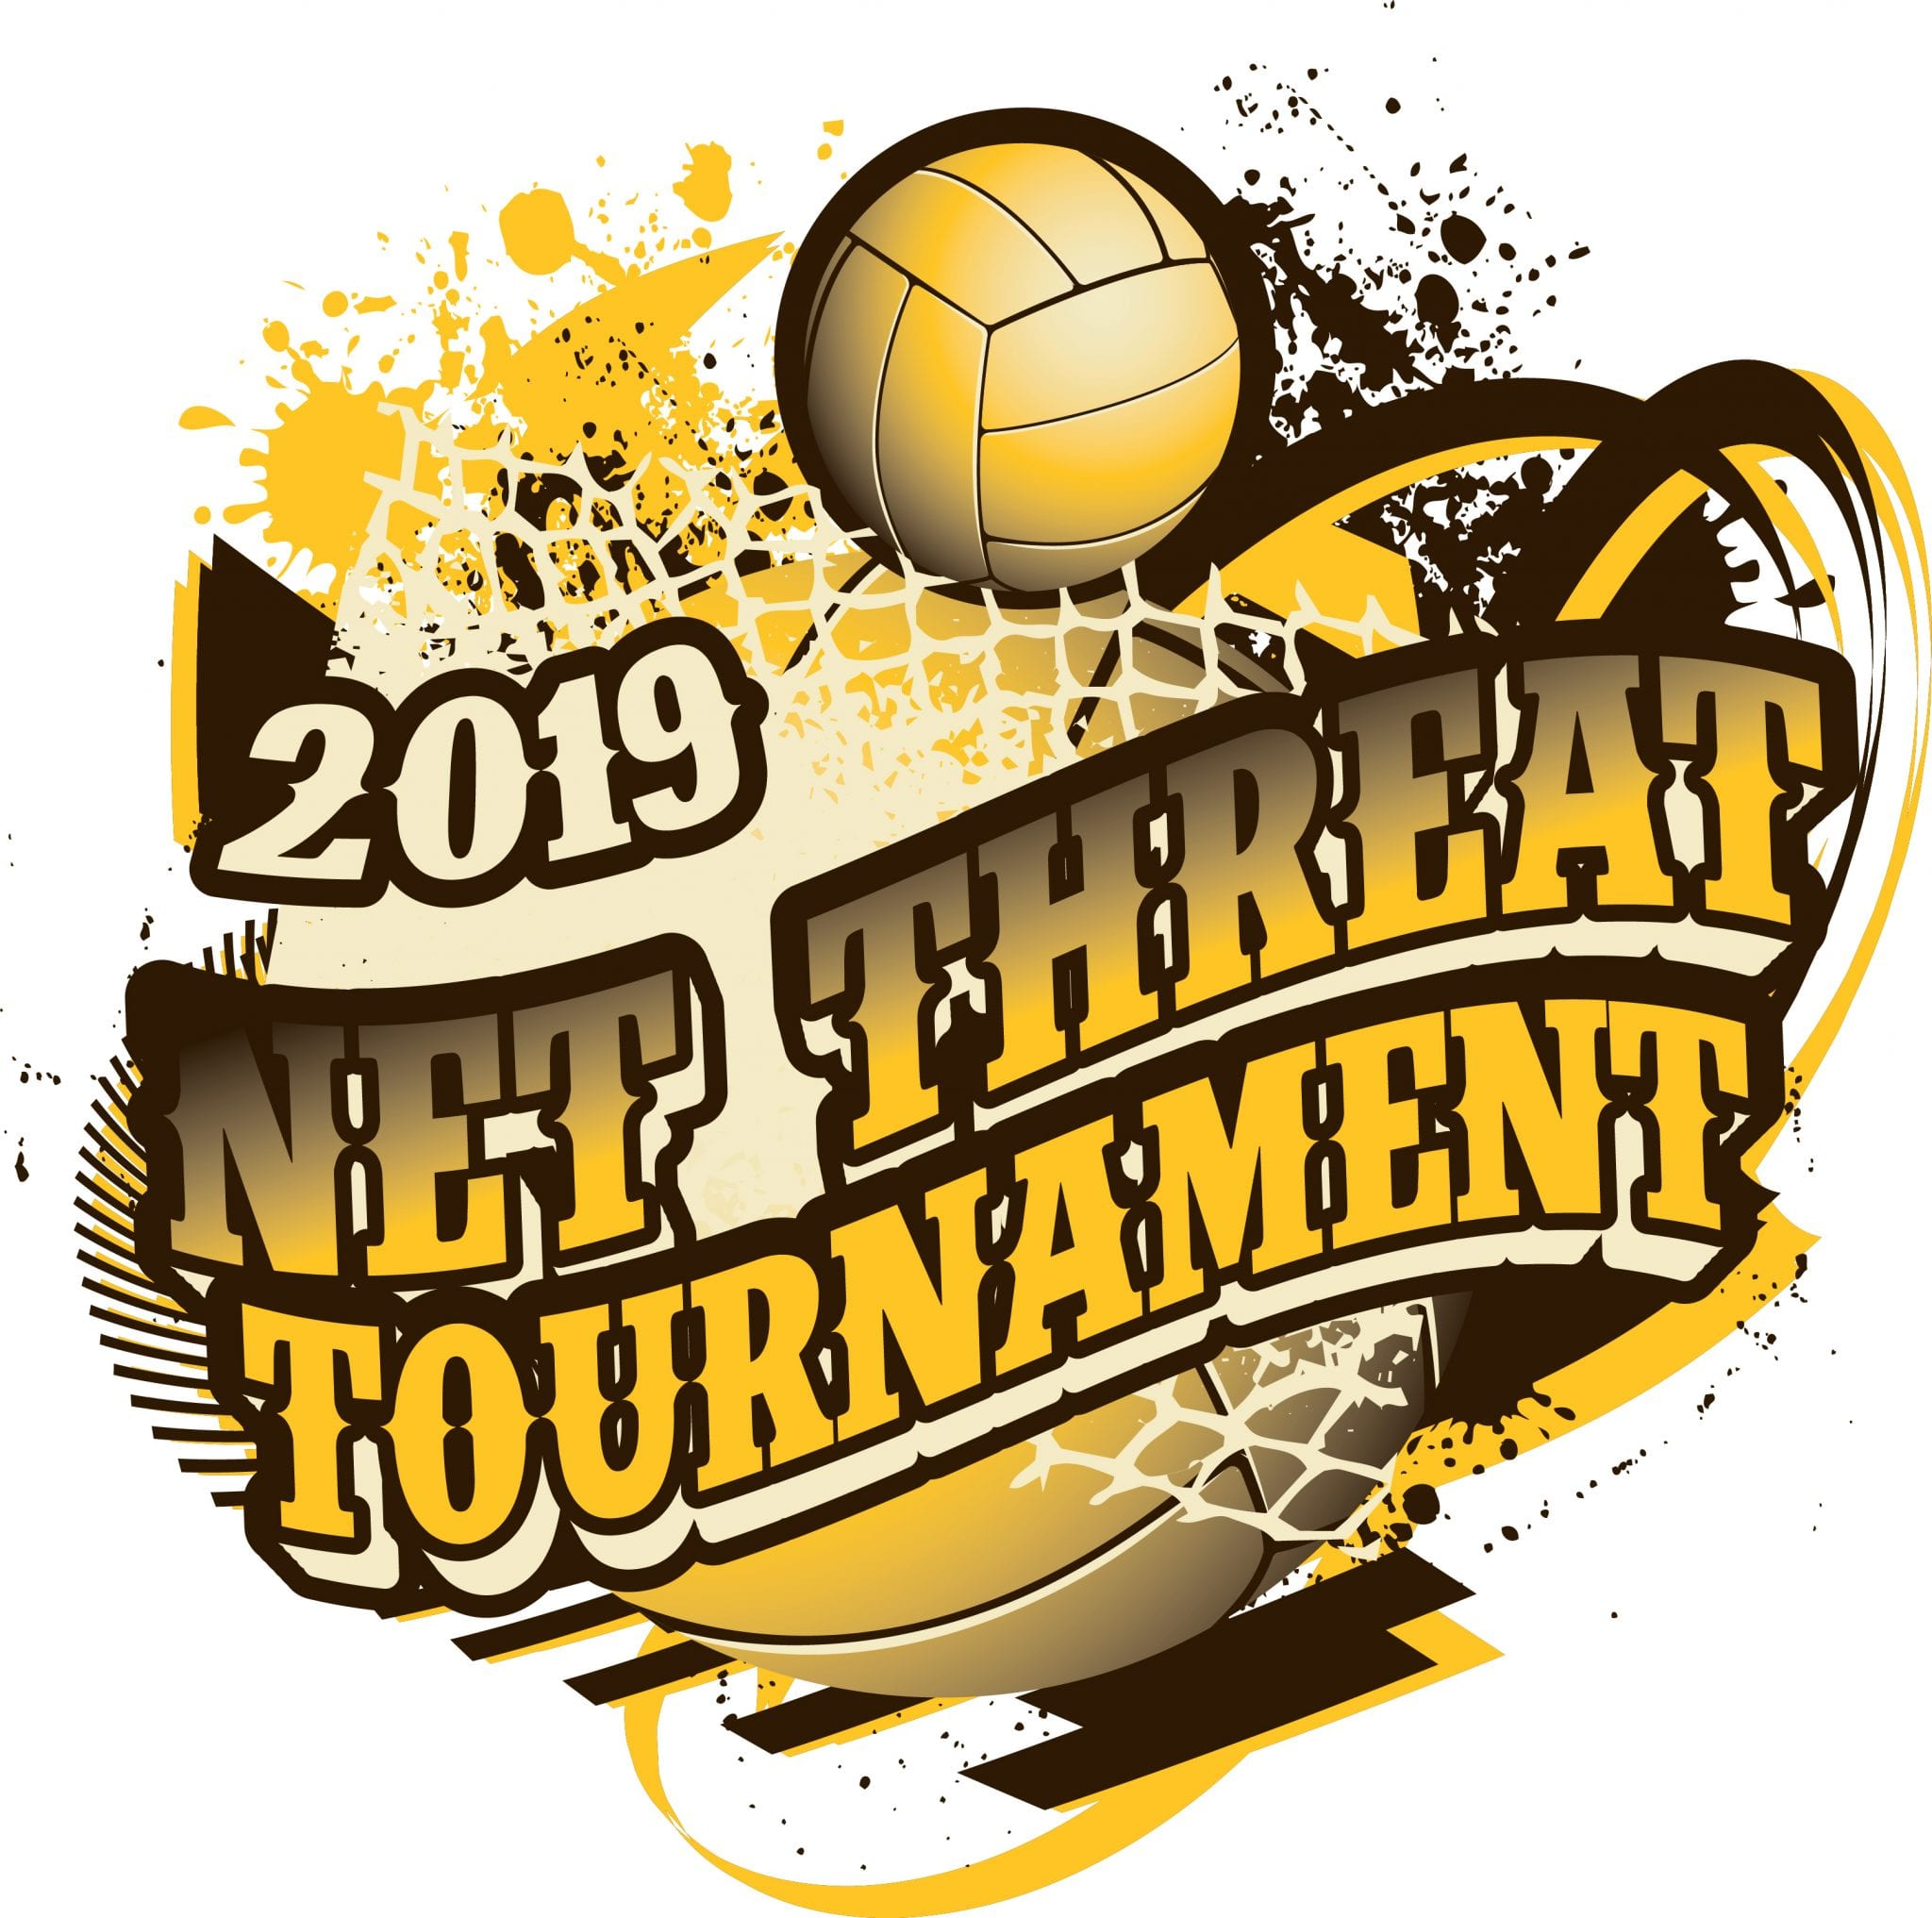 VOLLEYBALL NET THREAT TOURNAMENT 2019 adjustable T-shirt vector logo design for print